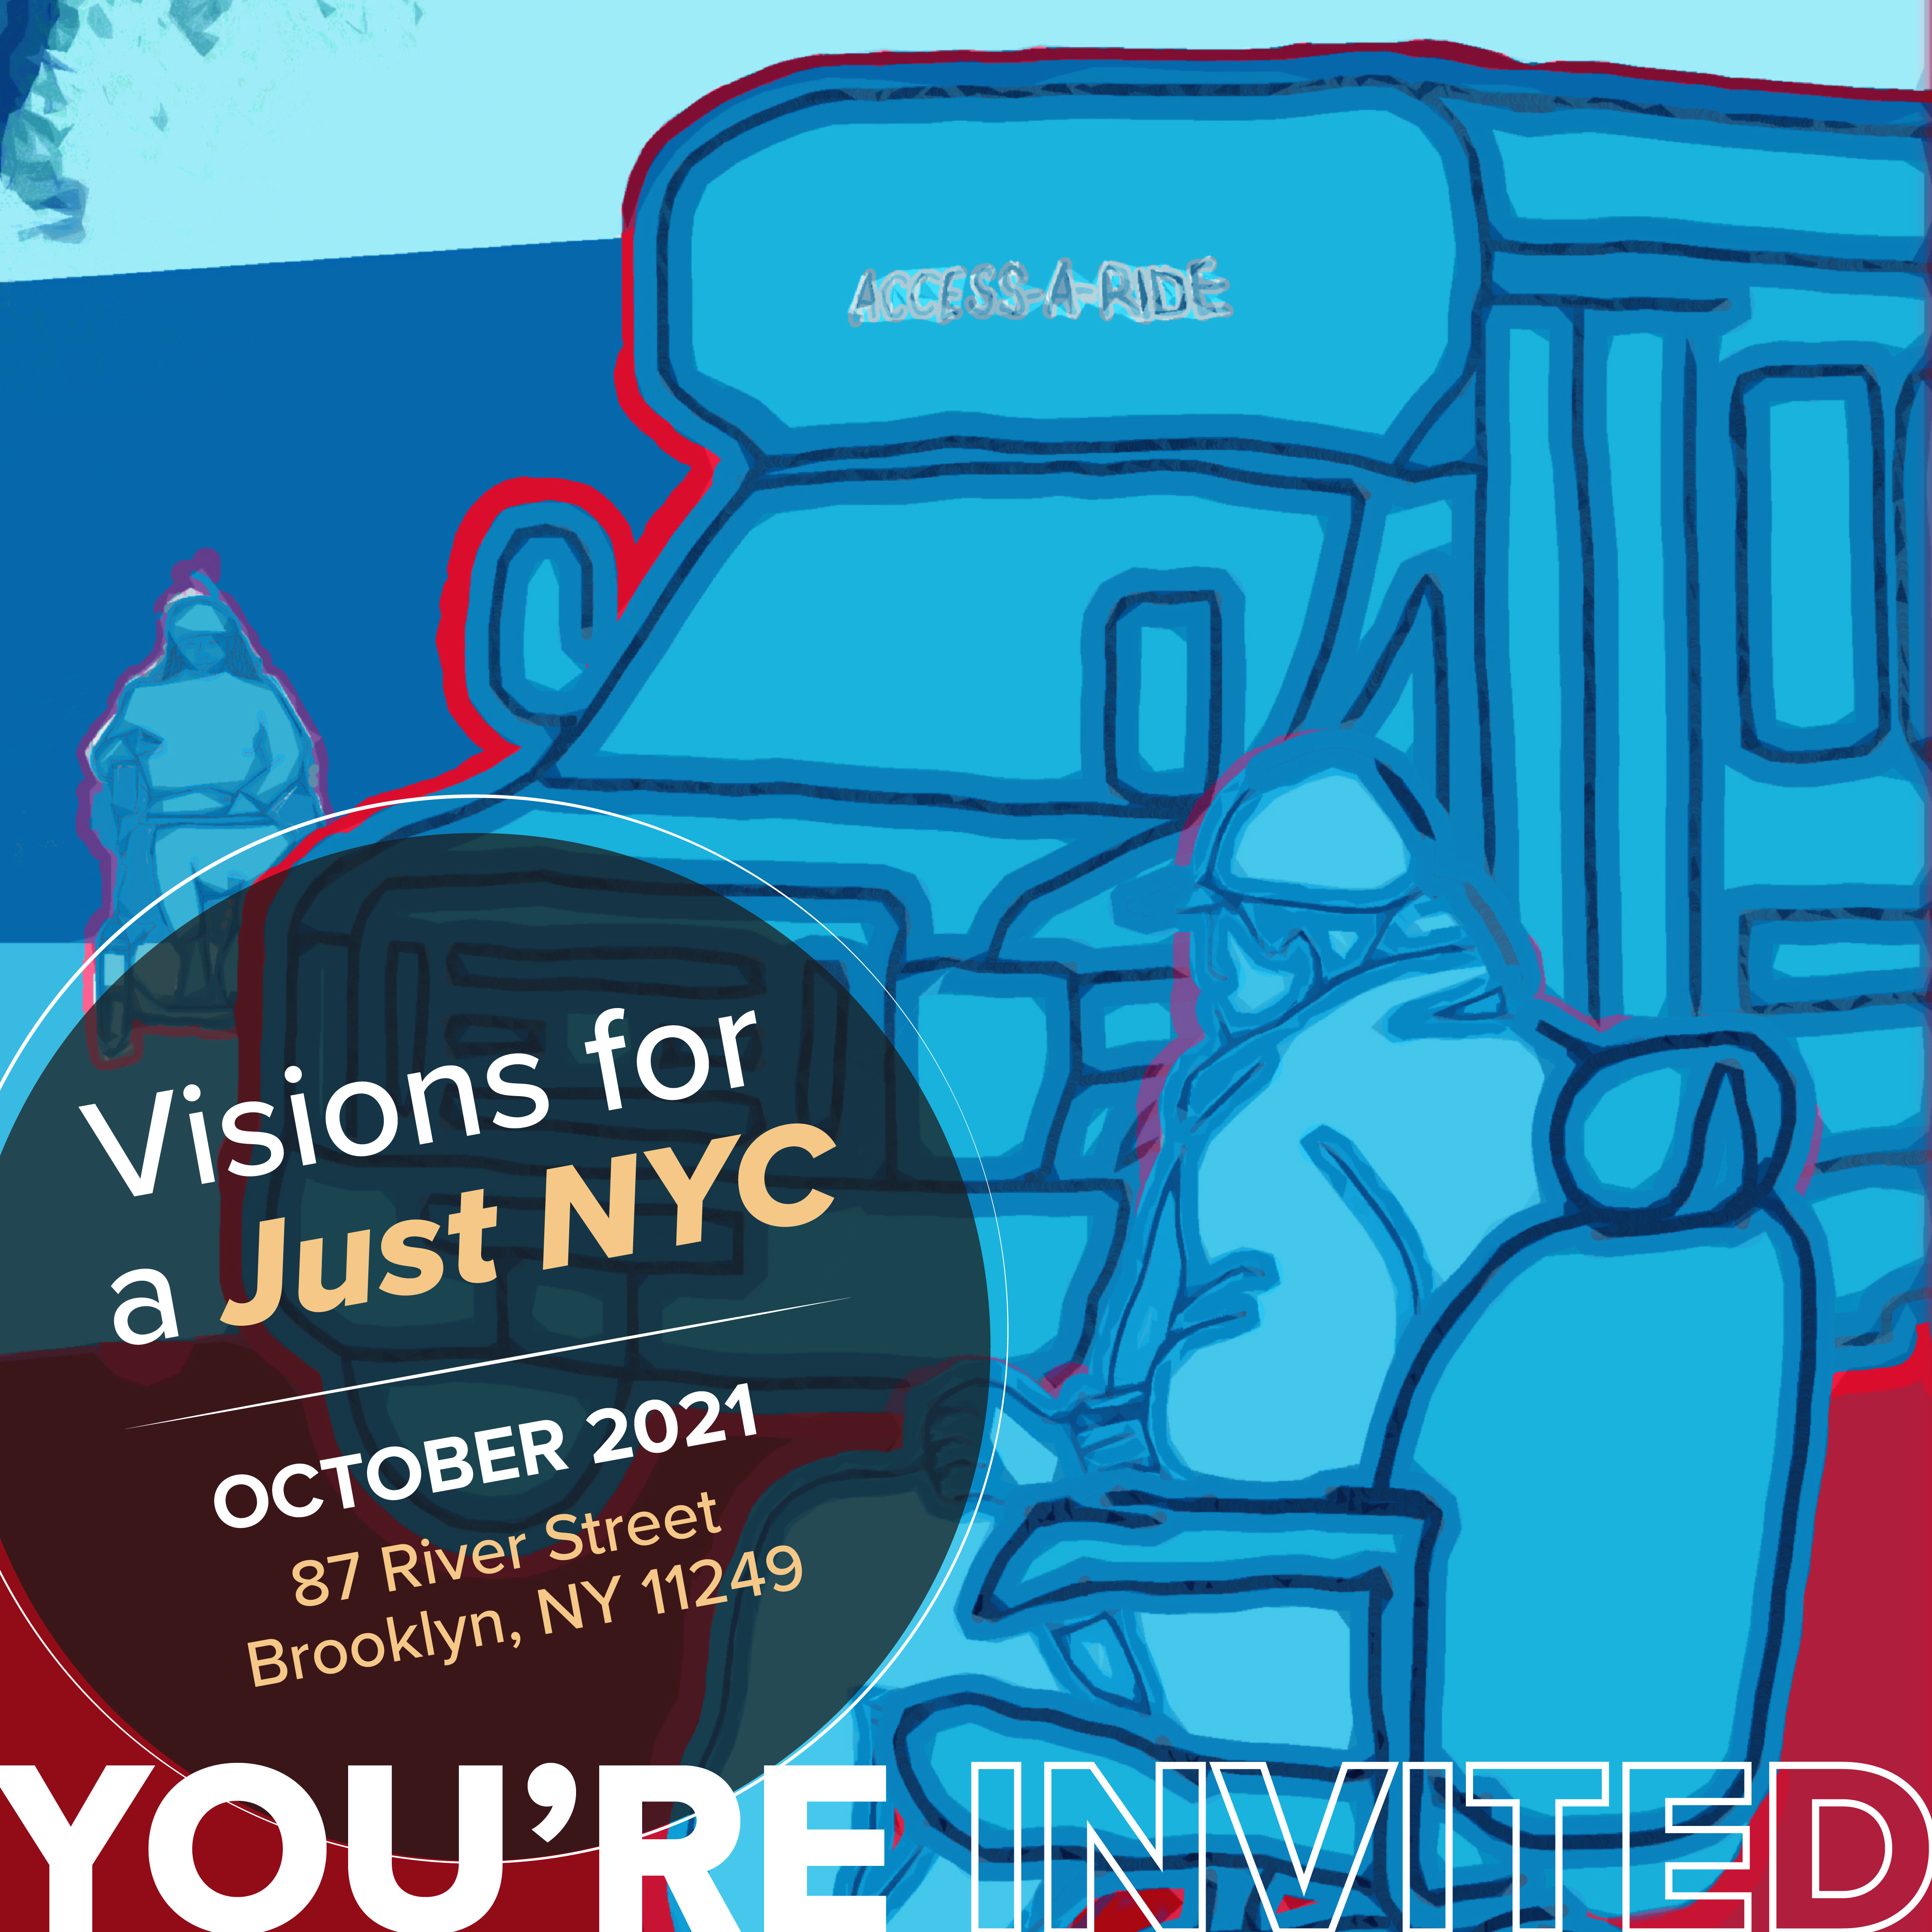 A mural panel in blue of Access-a-Ride paratransit service. Text reads: Visions for a Just NYC. October 2021. 87 River Street, Brooklyn, NY, 11249.